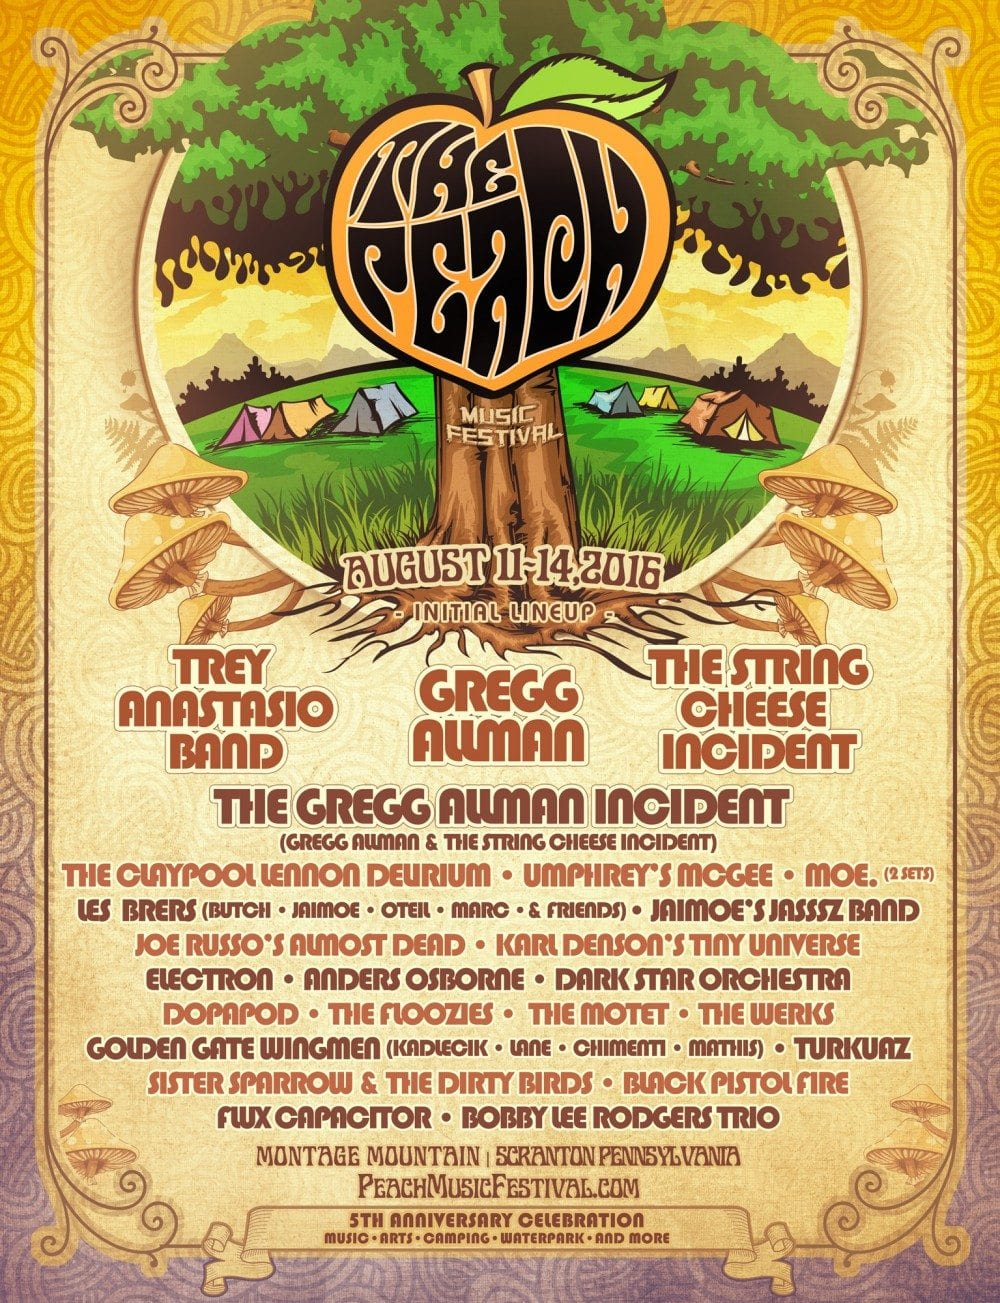 The Peach Music Festival 2016 Festival Poster